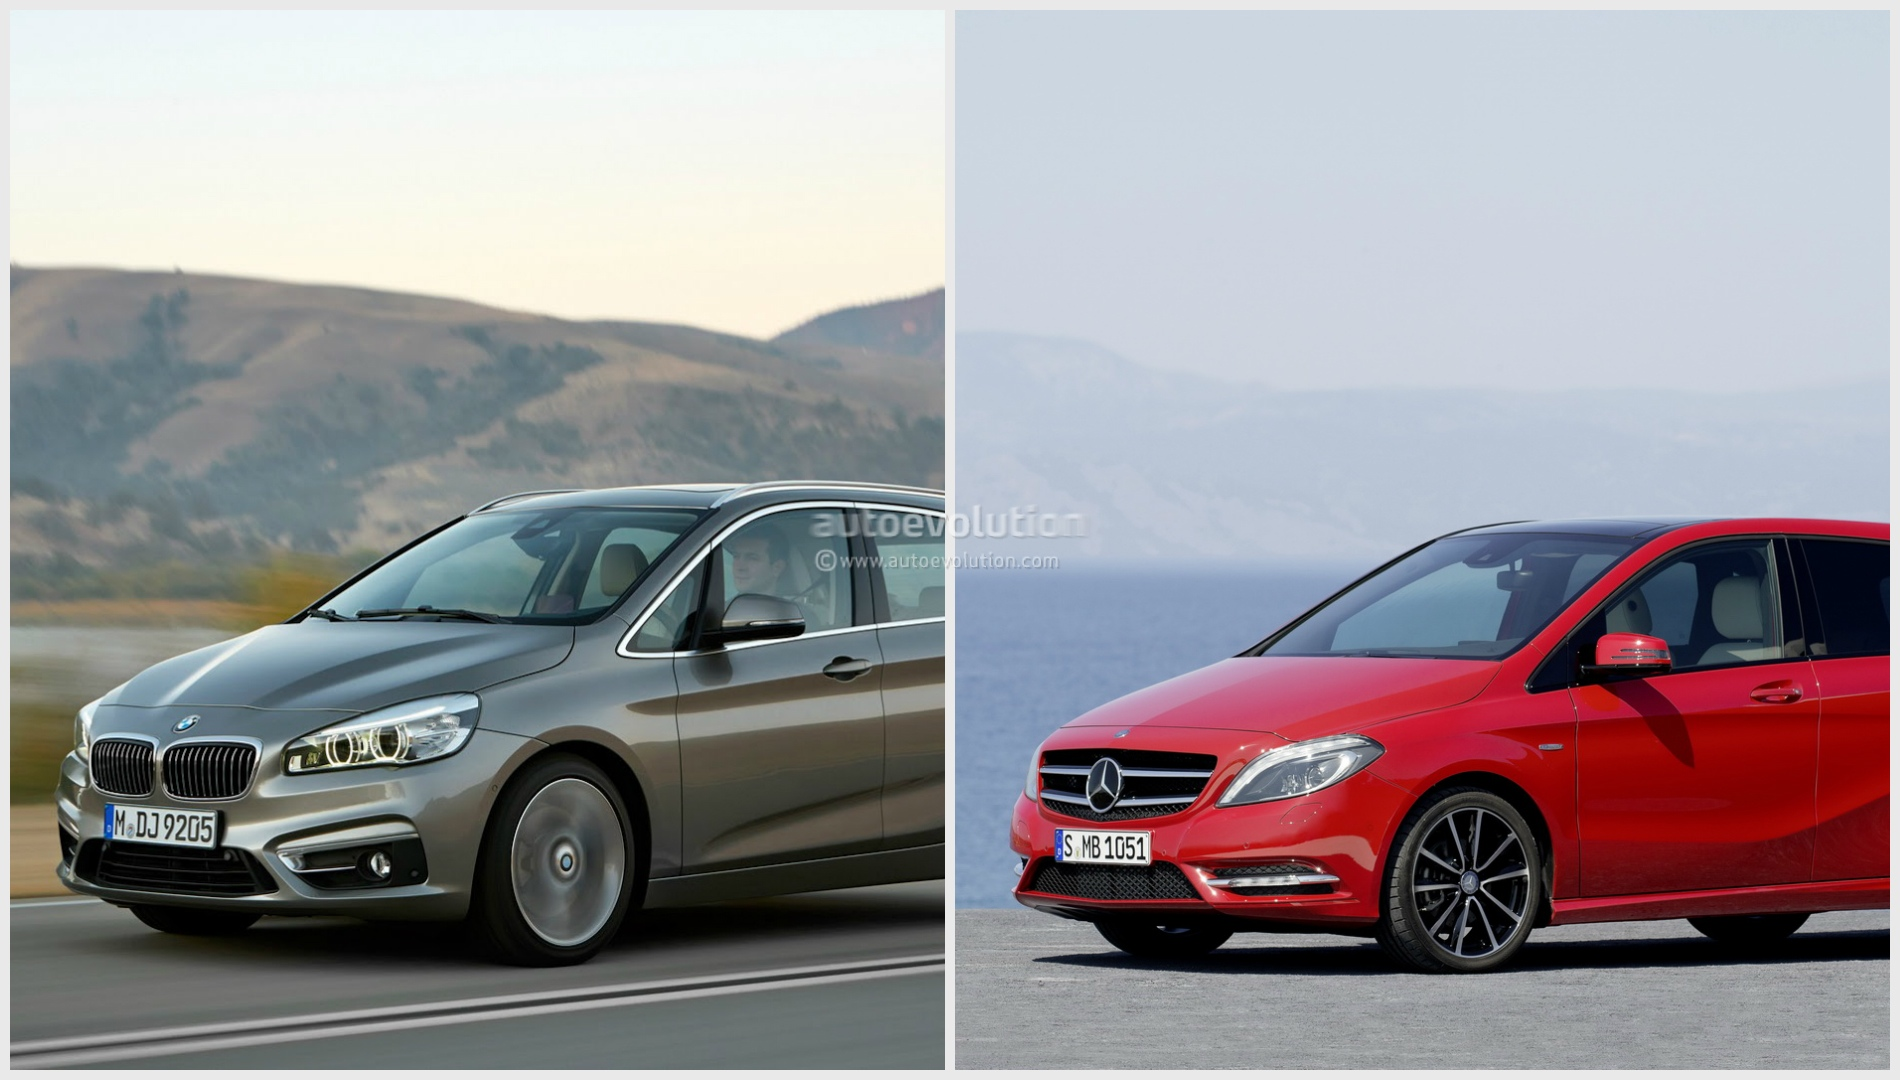 Bmw 2 series vs mercedes benz b class photo comparison for Bmw mercedes benz